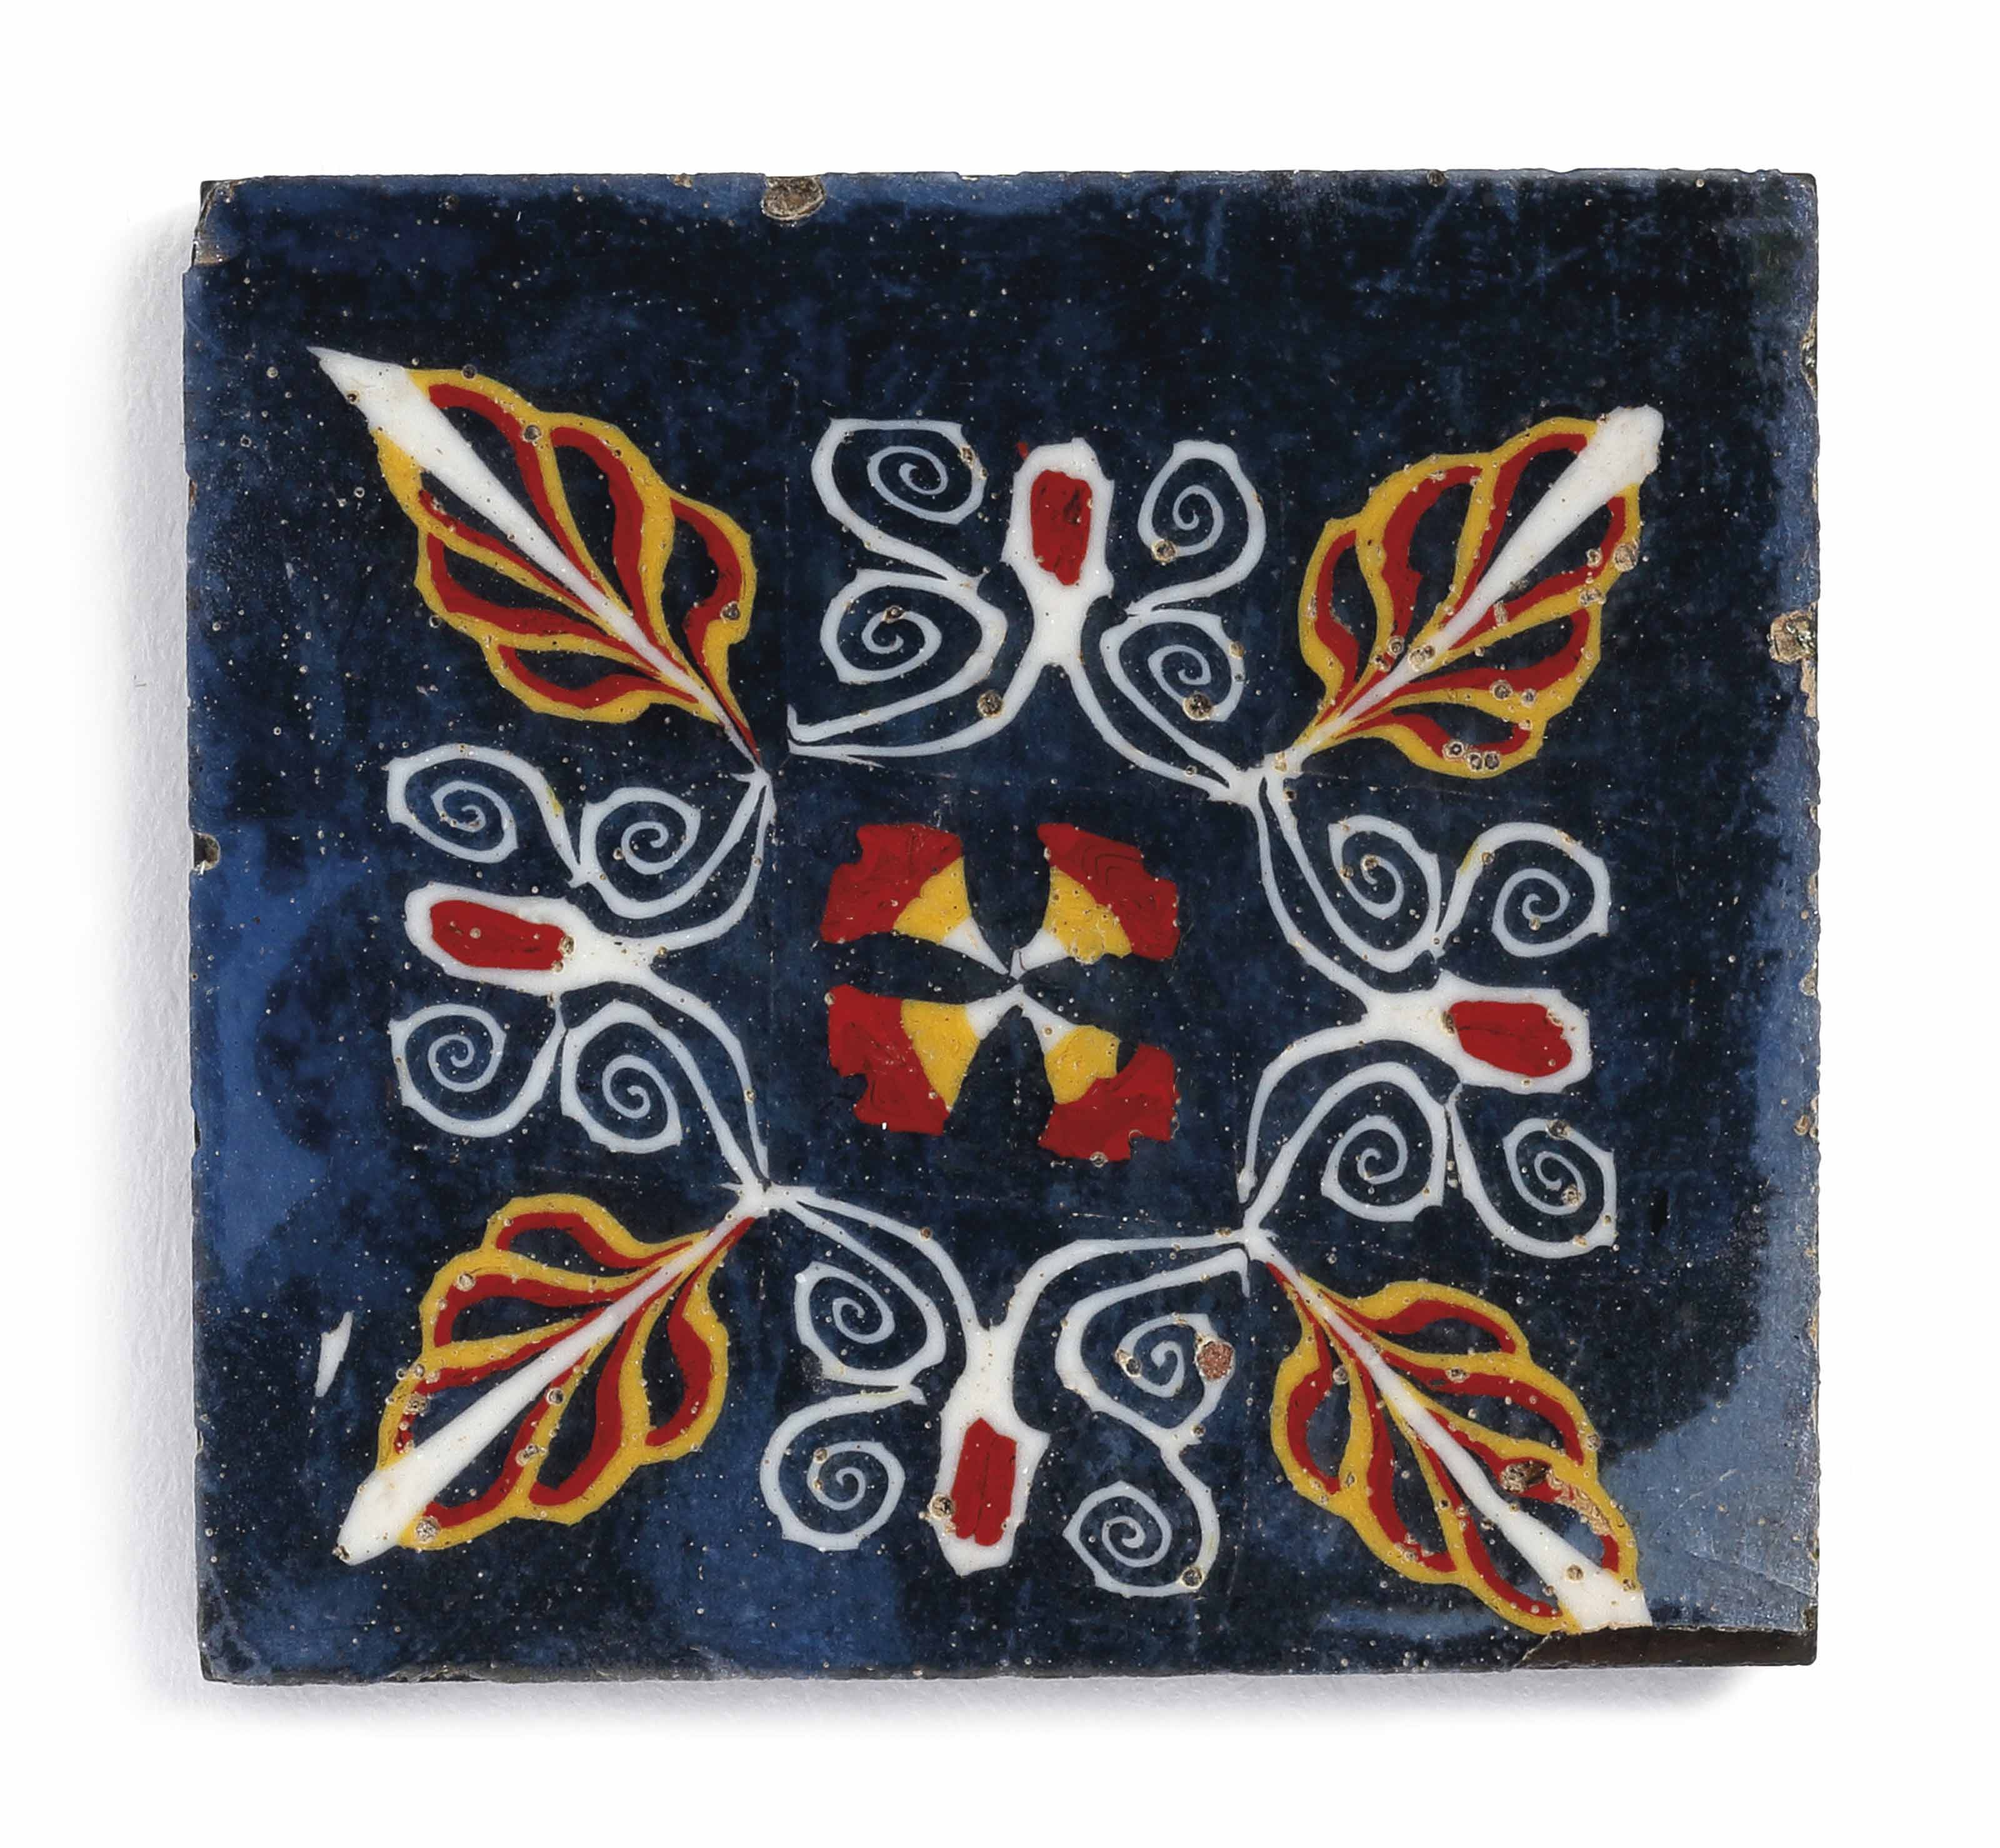 AN EGYPTIAN MOSAIC GLASS INLAY PLAQUE WITH LILY-AND-PALMETTE MOTIF